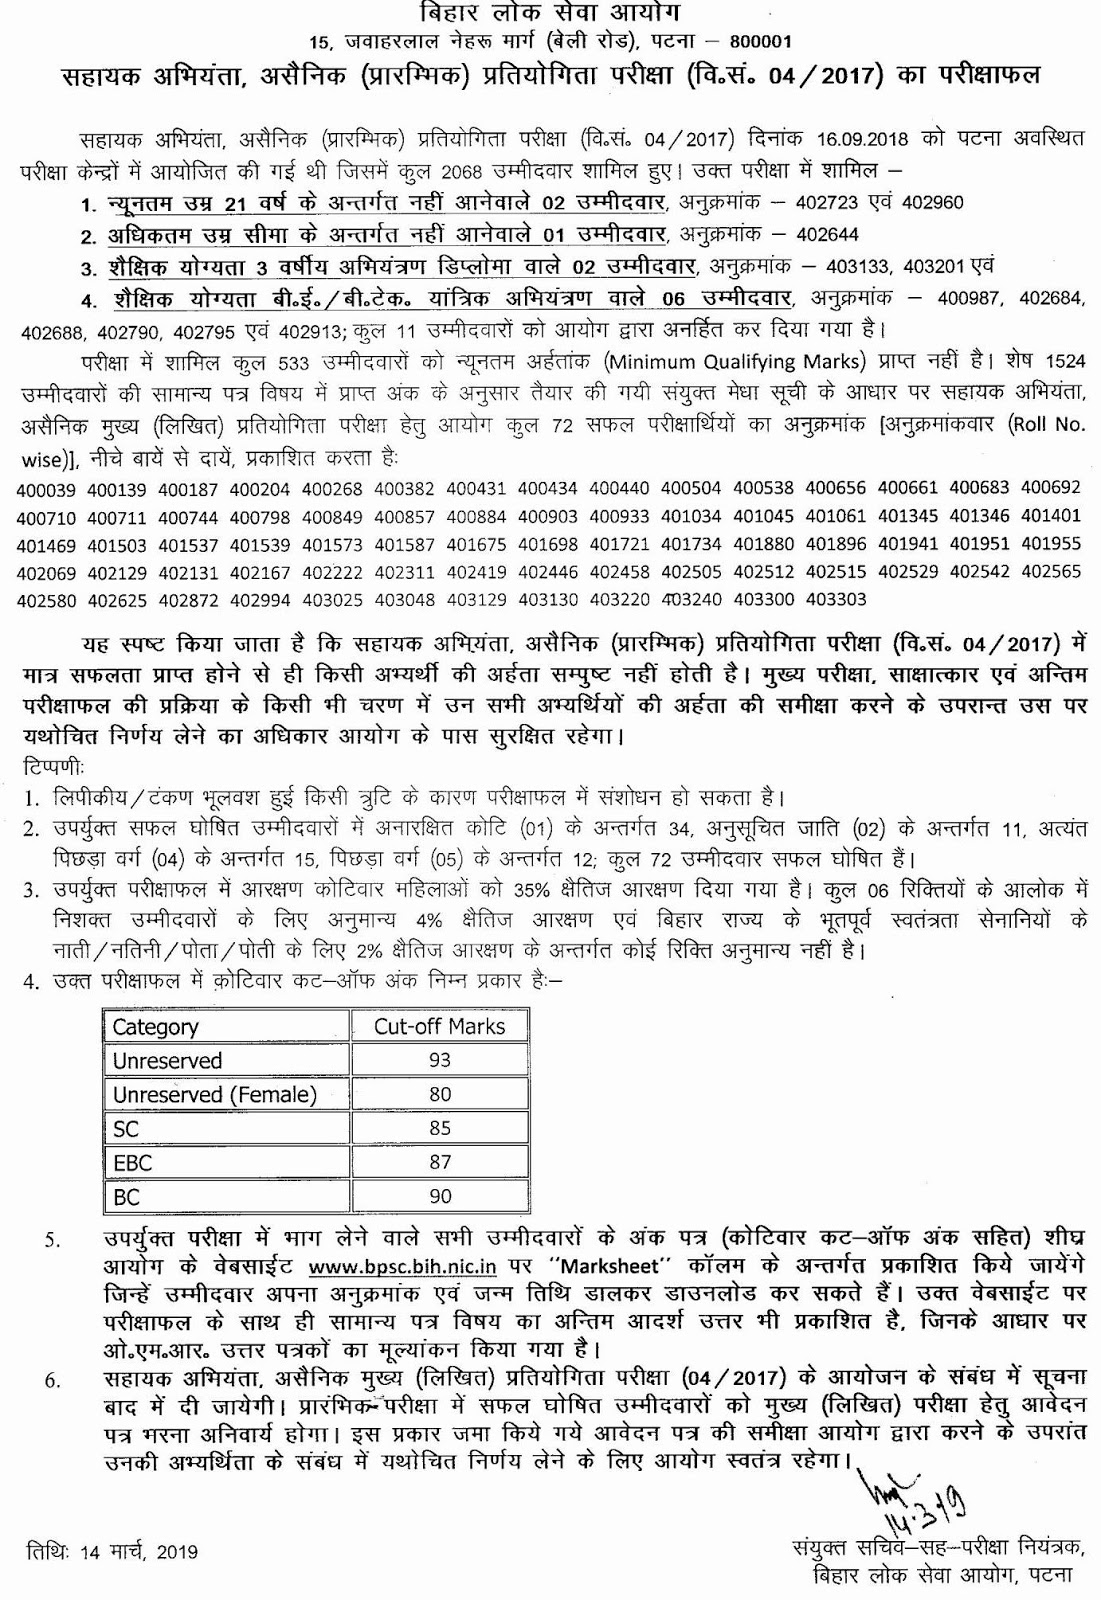 BPSC CIVIL ASSISTANT ENGINEER RESULT 2019 OUT: RESULT IS